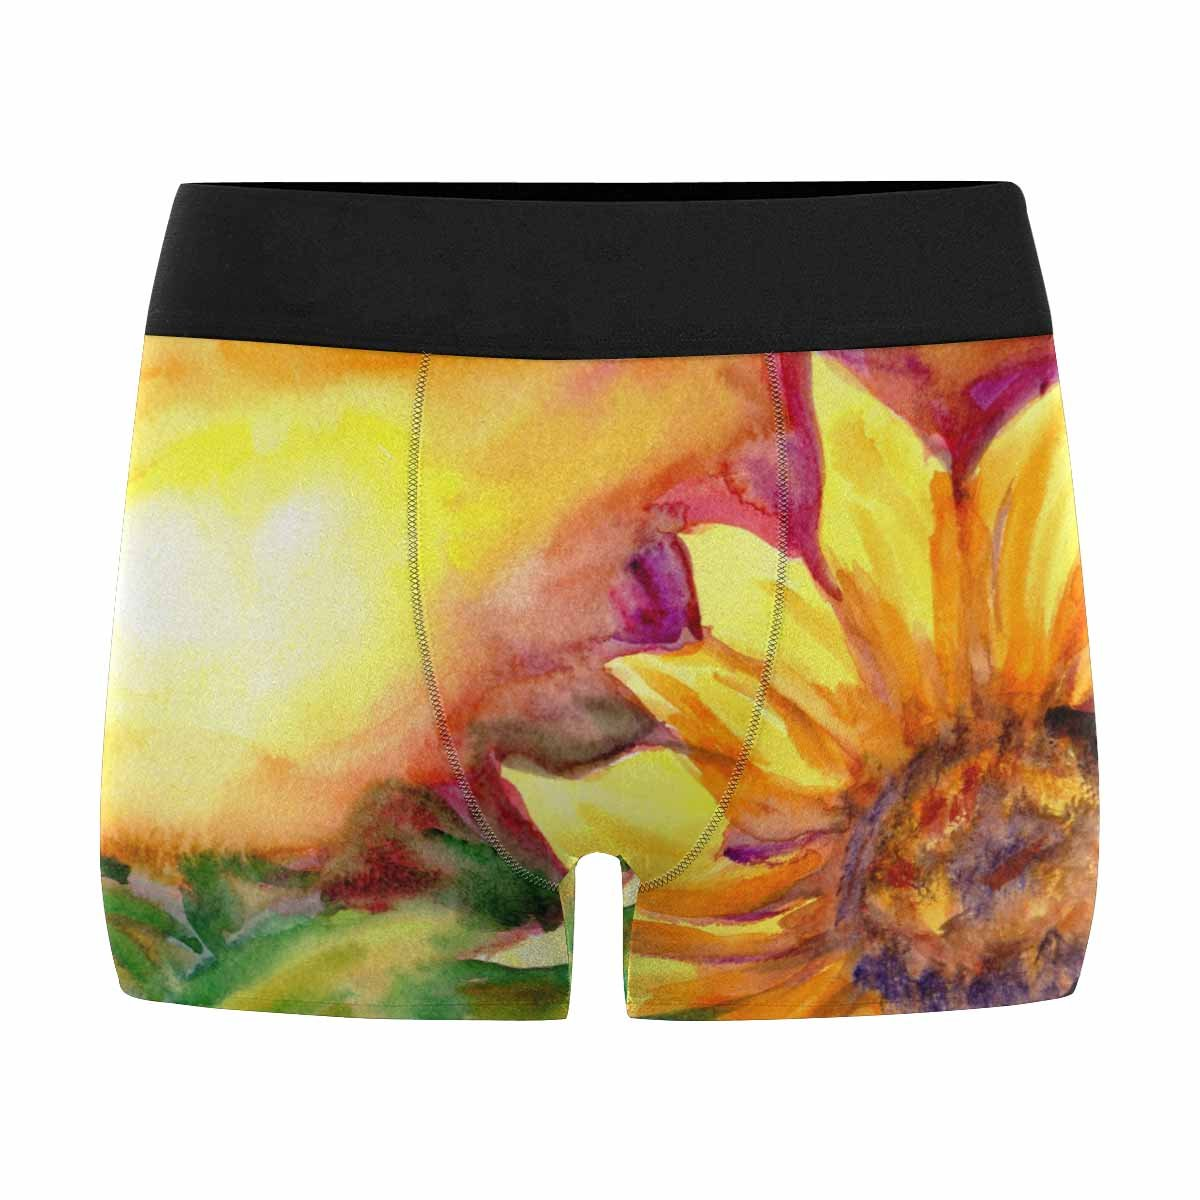 XS-3XL INTERESTPRINT Mens All-Over Print Boxer Briefs Watercolor Painting Sunflower Field in Time Sunset